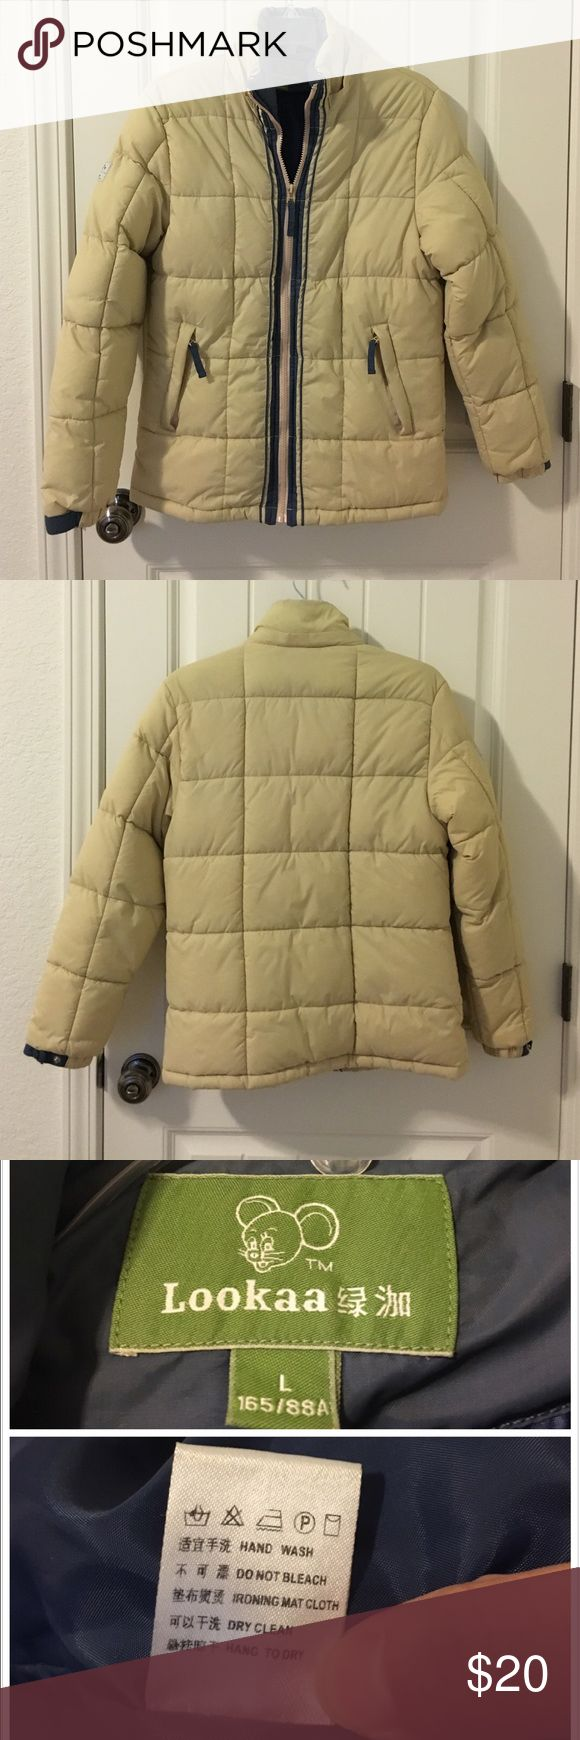 💃Down Jacket Sale🙋 Used. In good condition. Very warm. Minor tint can be seen in the last picture. Jackets & Coats